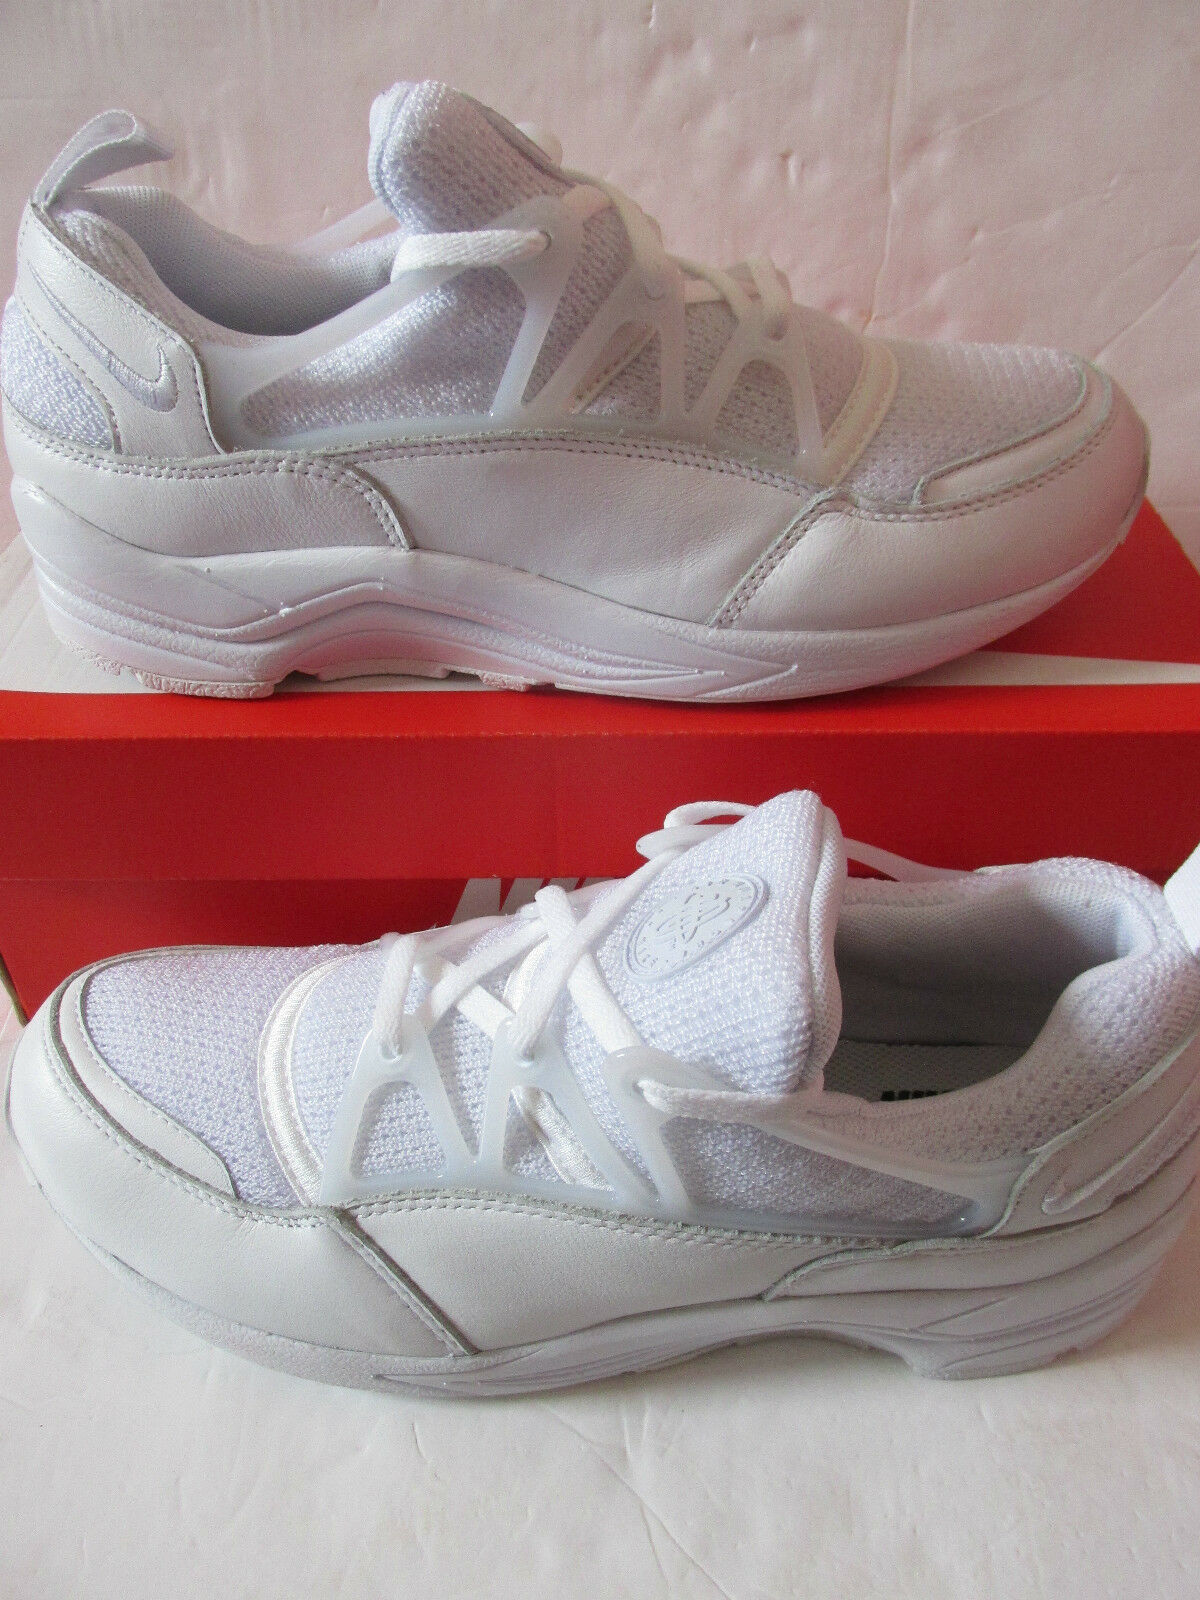 nike trainers air huarache light mens trainers nike 306127 111 sneakers shoes 858b62